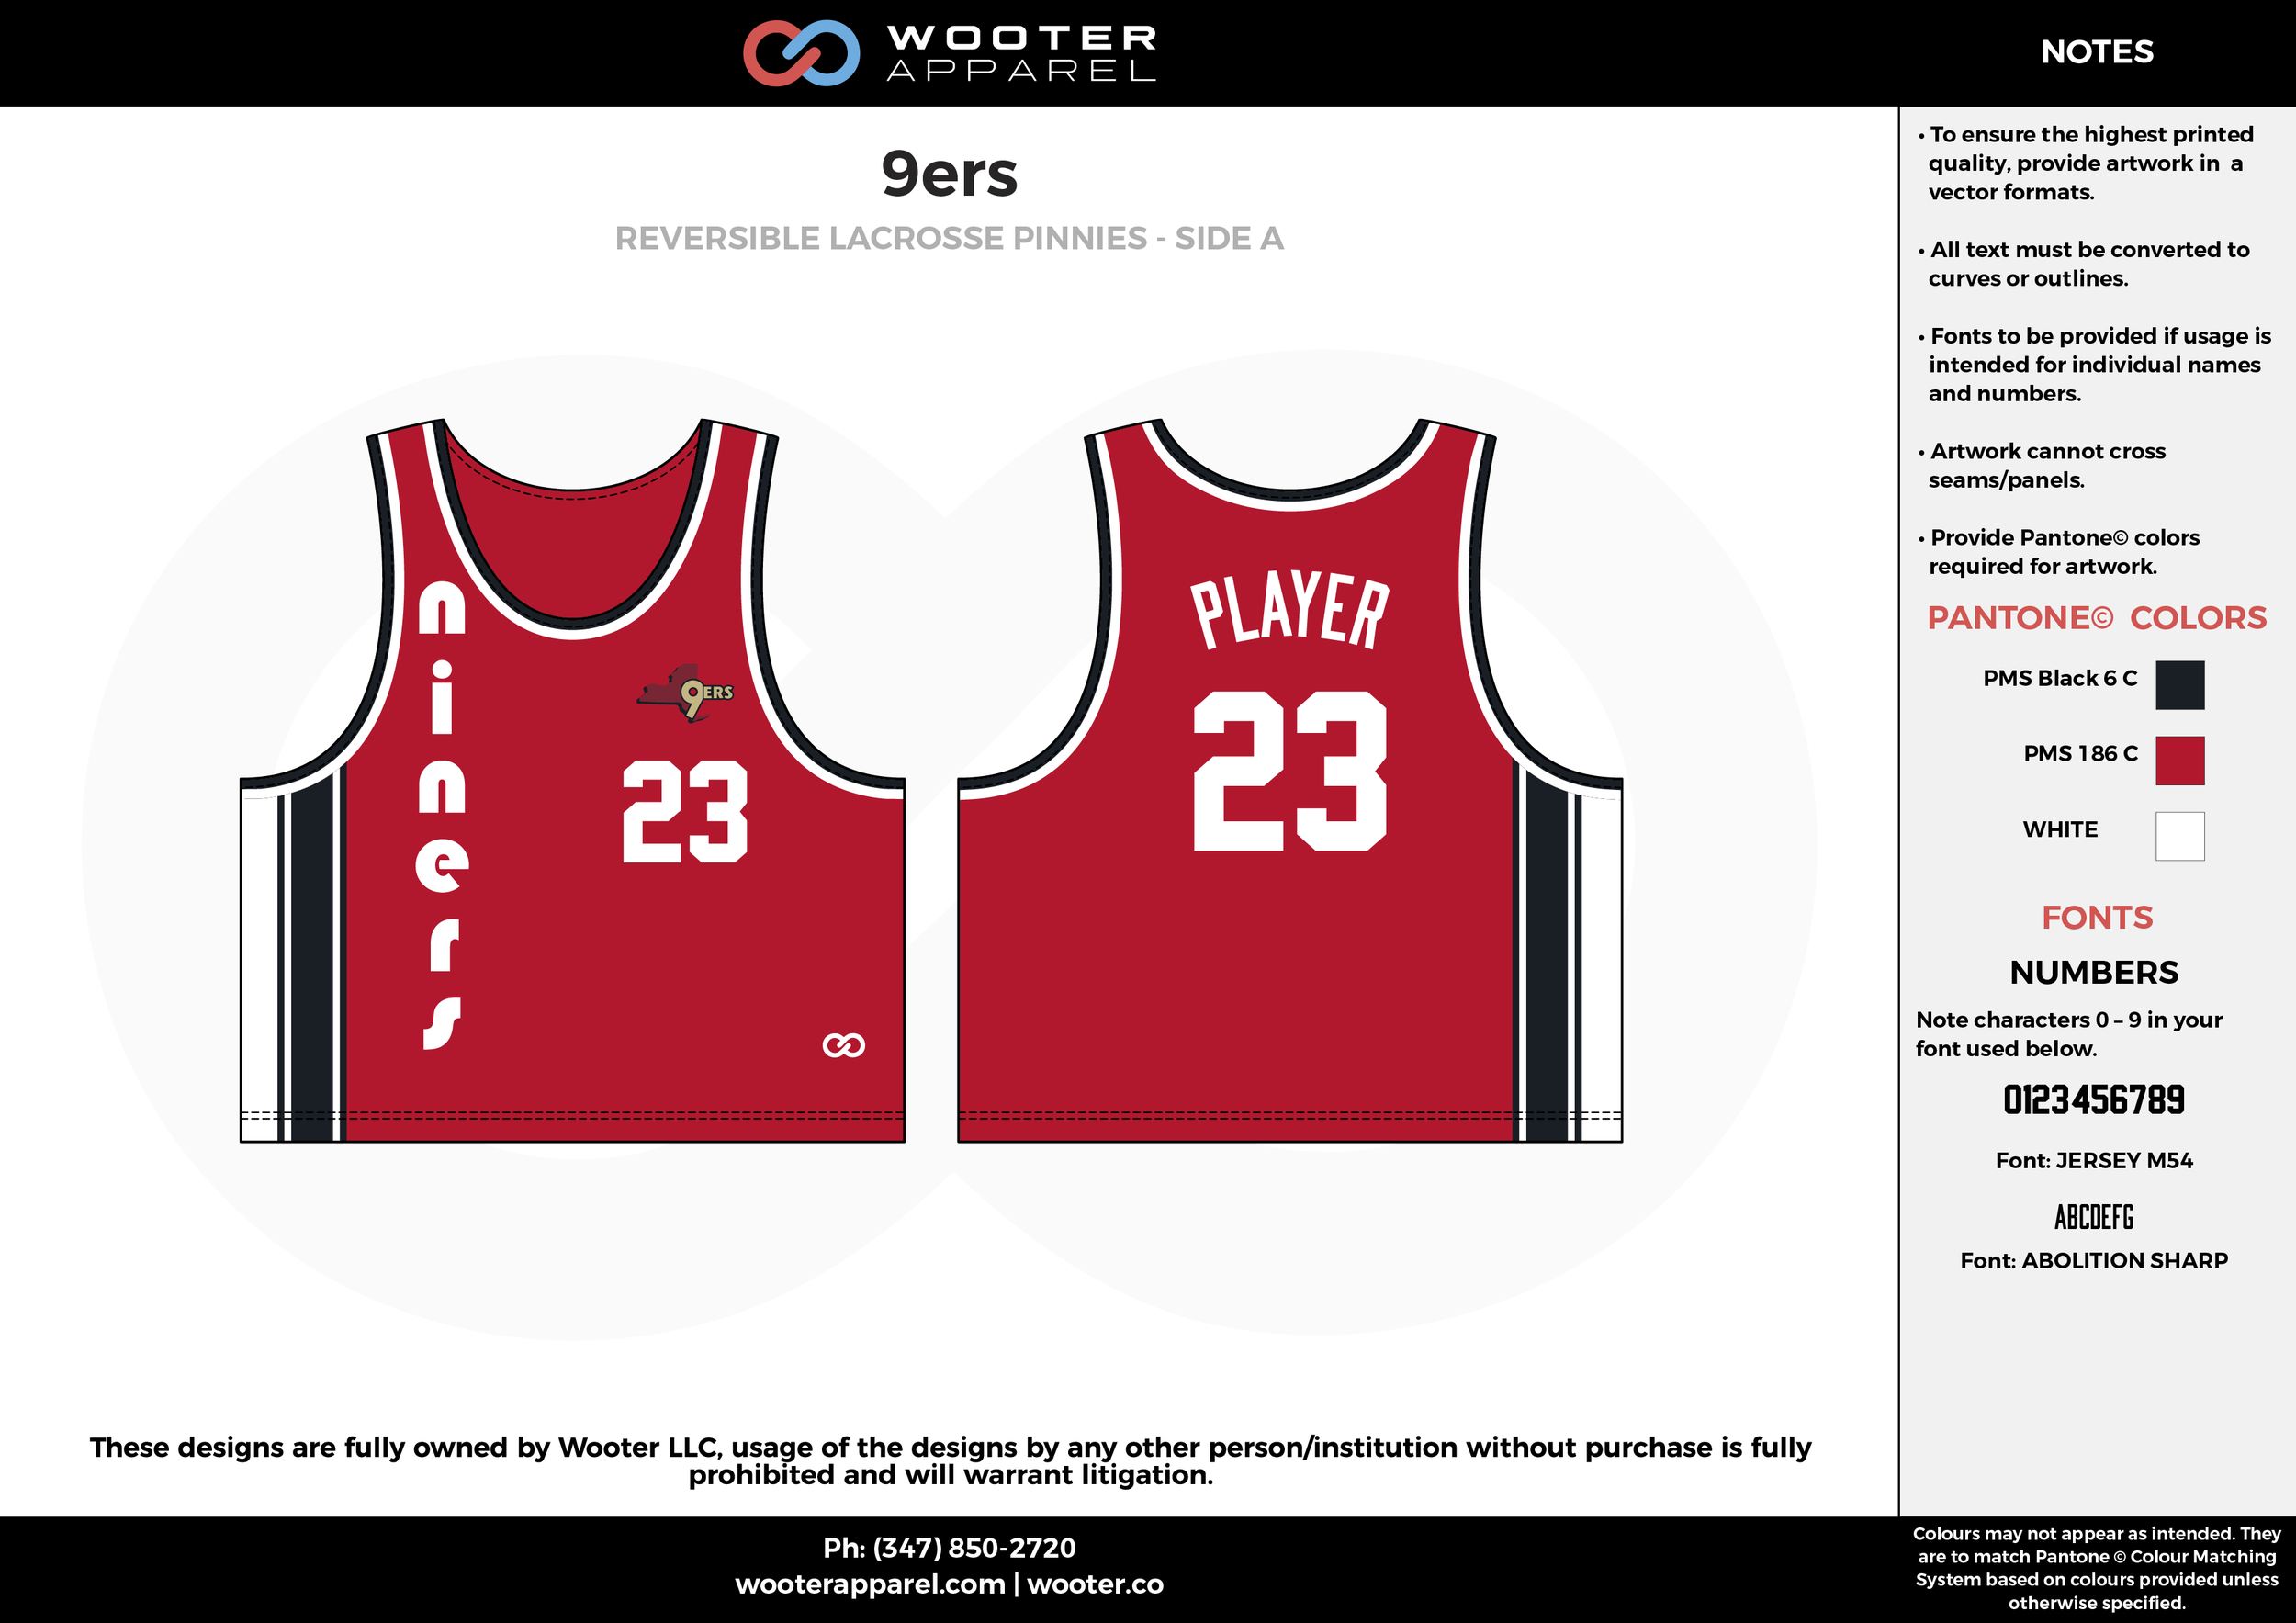 9ers Red Black and White Lacrosse Uniforms, Reversible Pinnies, Jerseys,